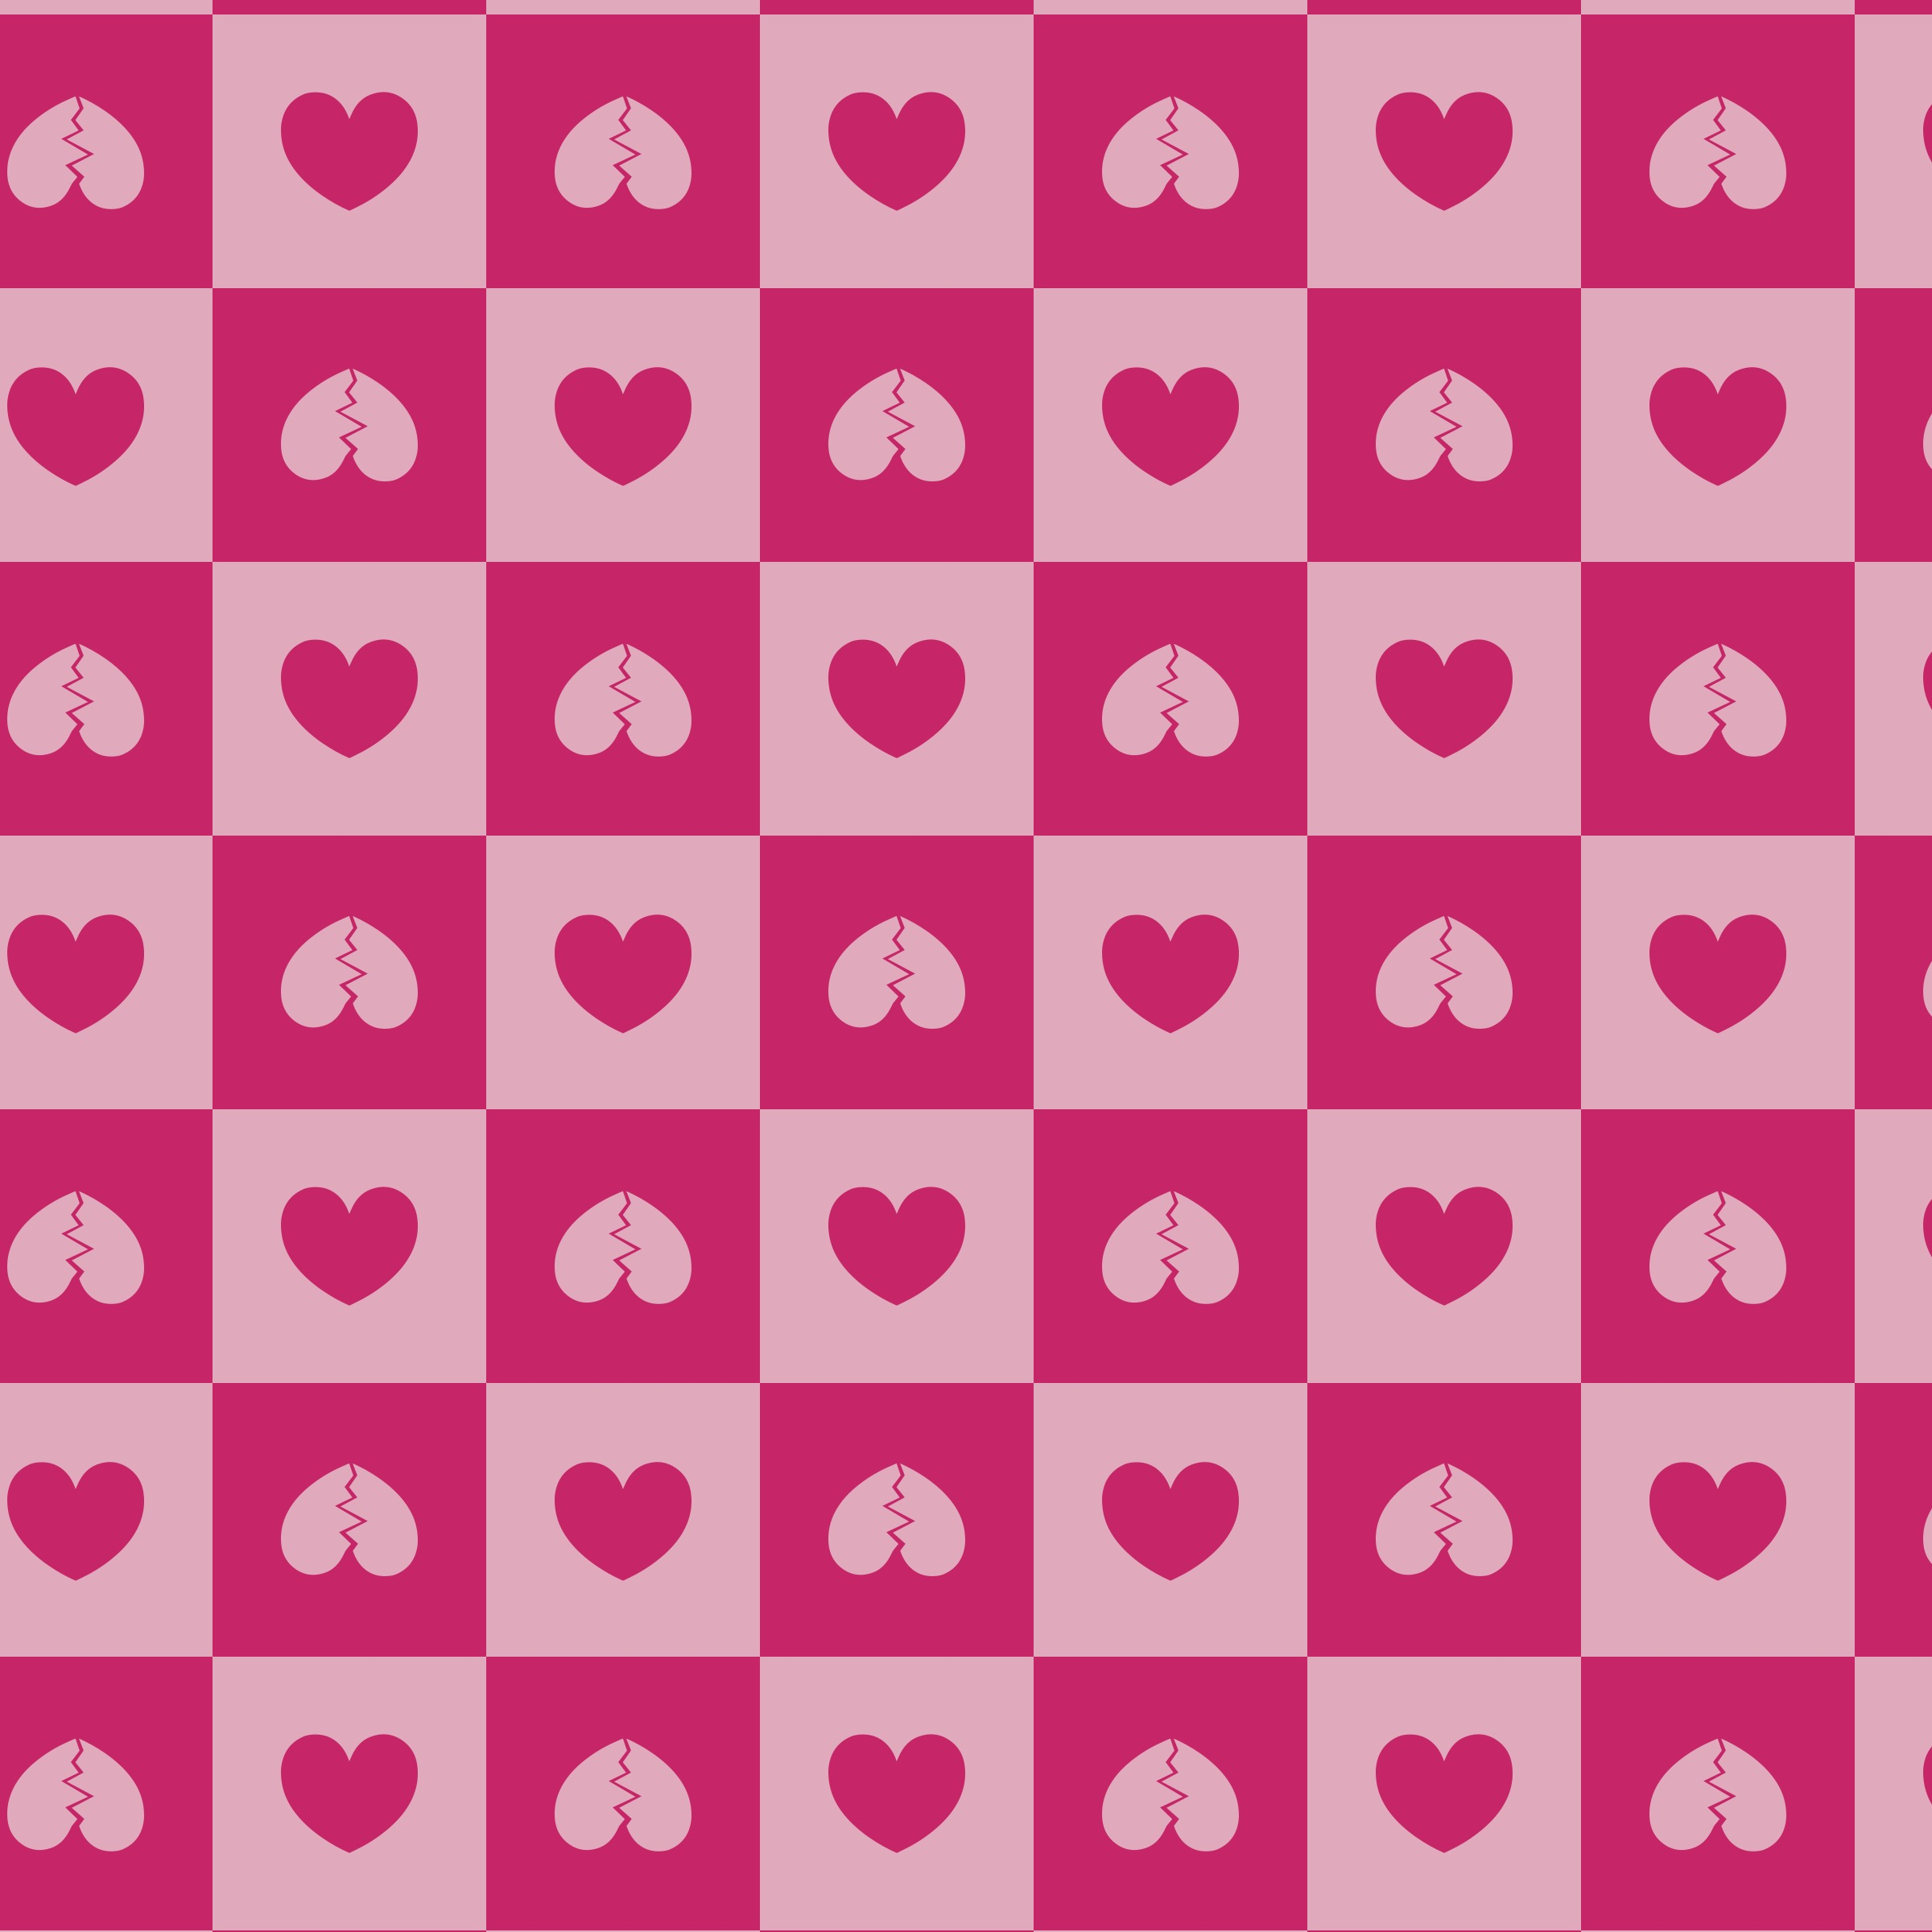 pink print with hearts